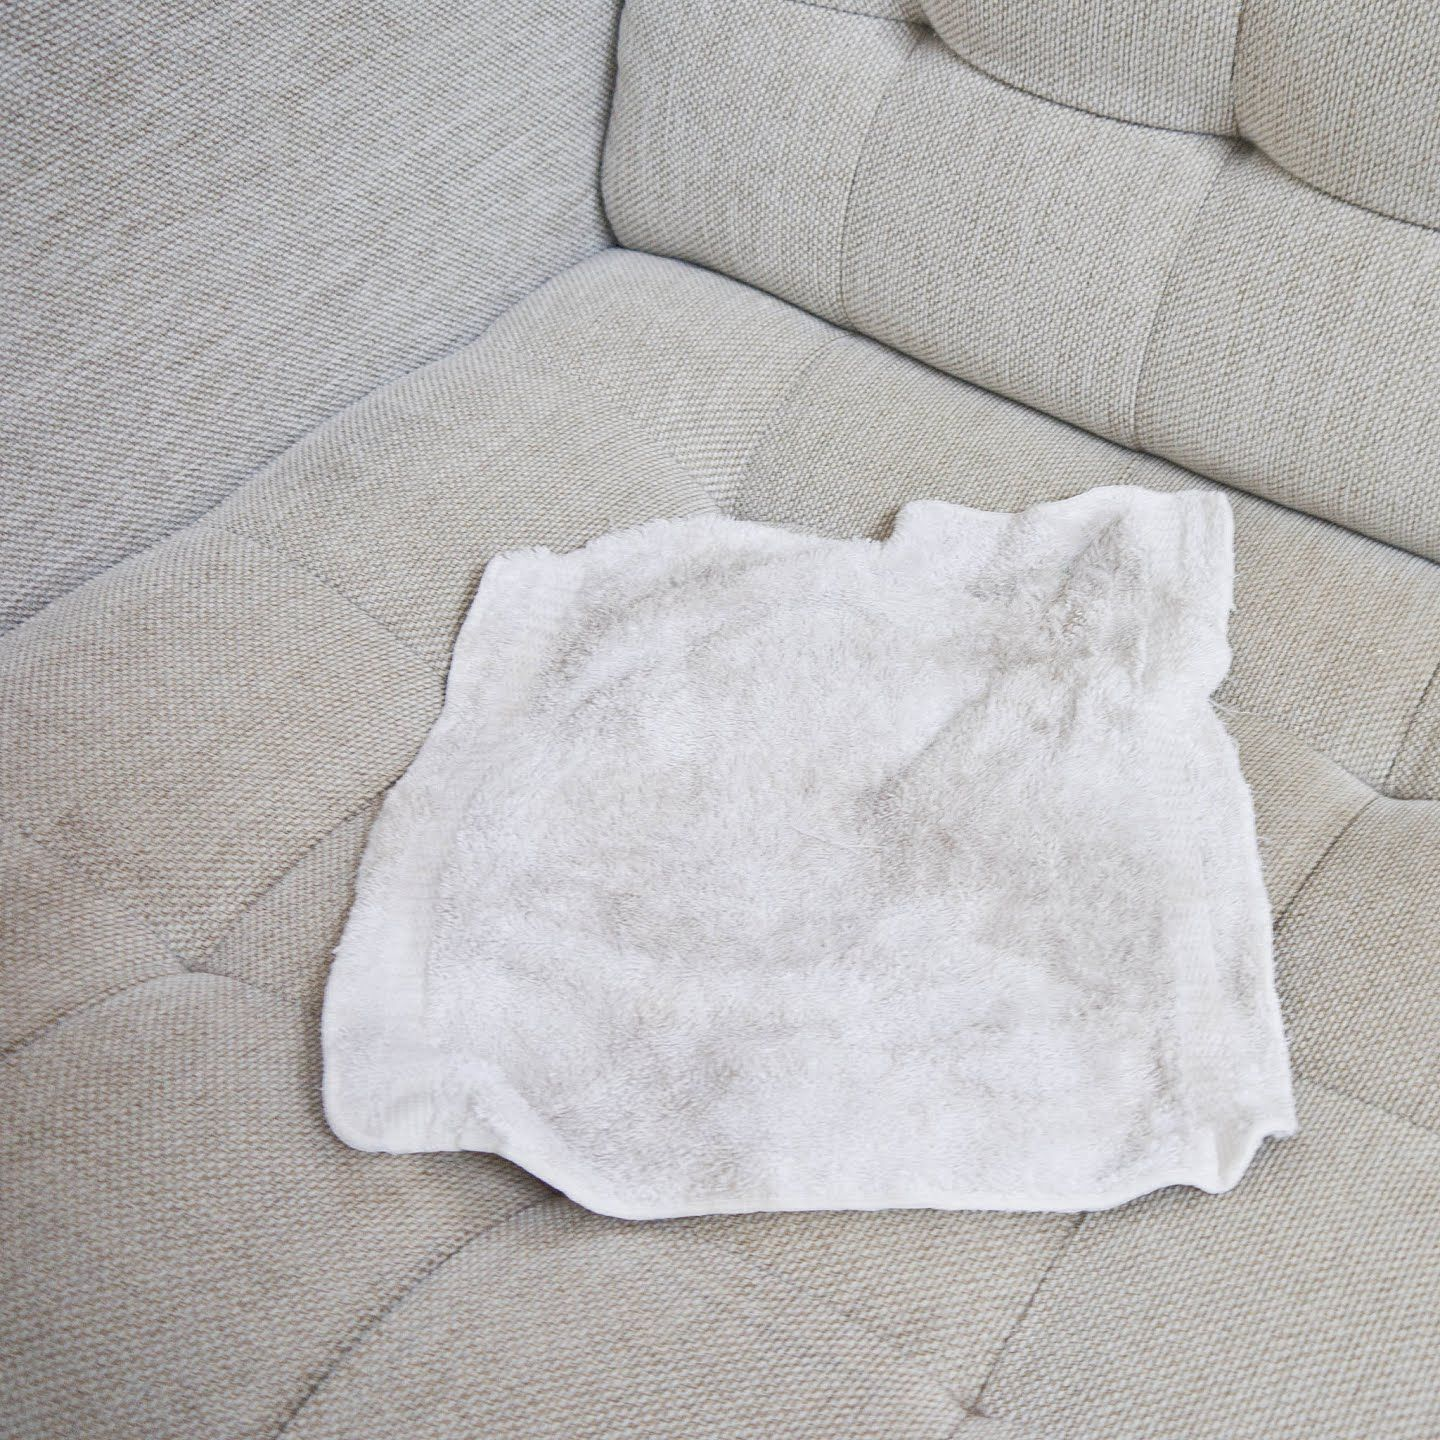 Refresh Your Fabric Couch With This Diy Cleaning Method Clean Sofa Clean Fabric Couch Clean Sofa Fabric